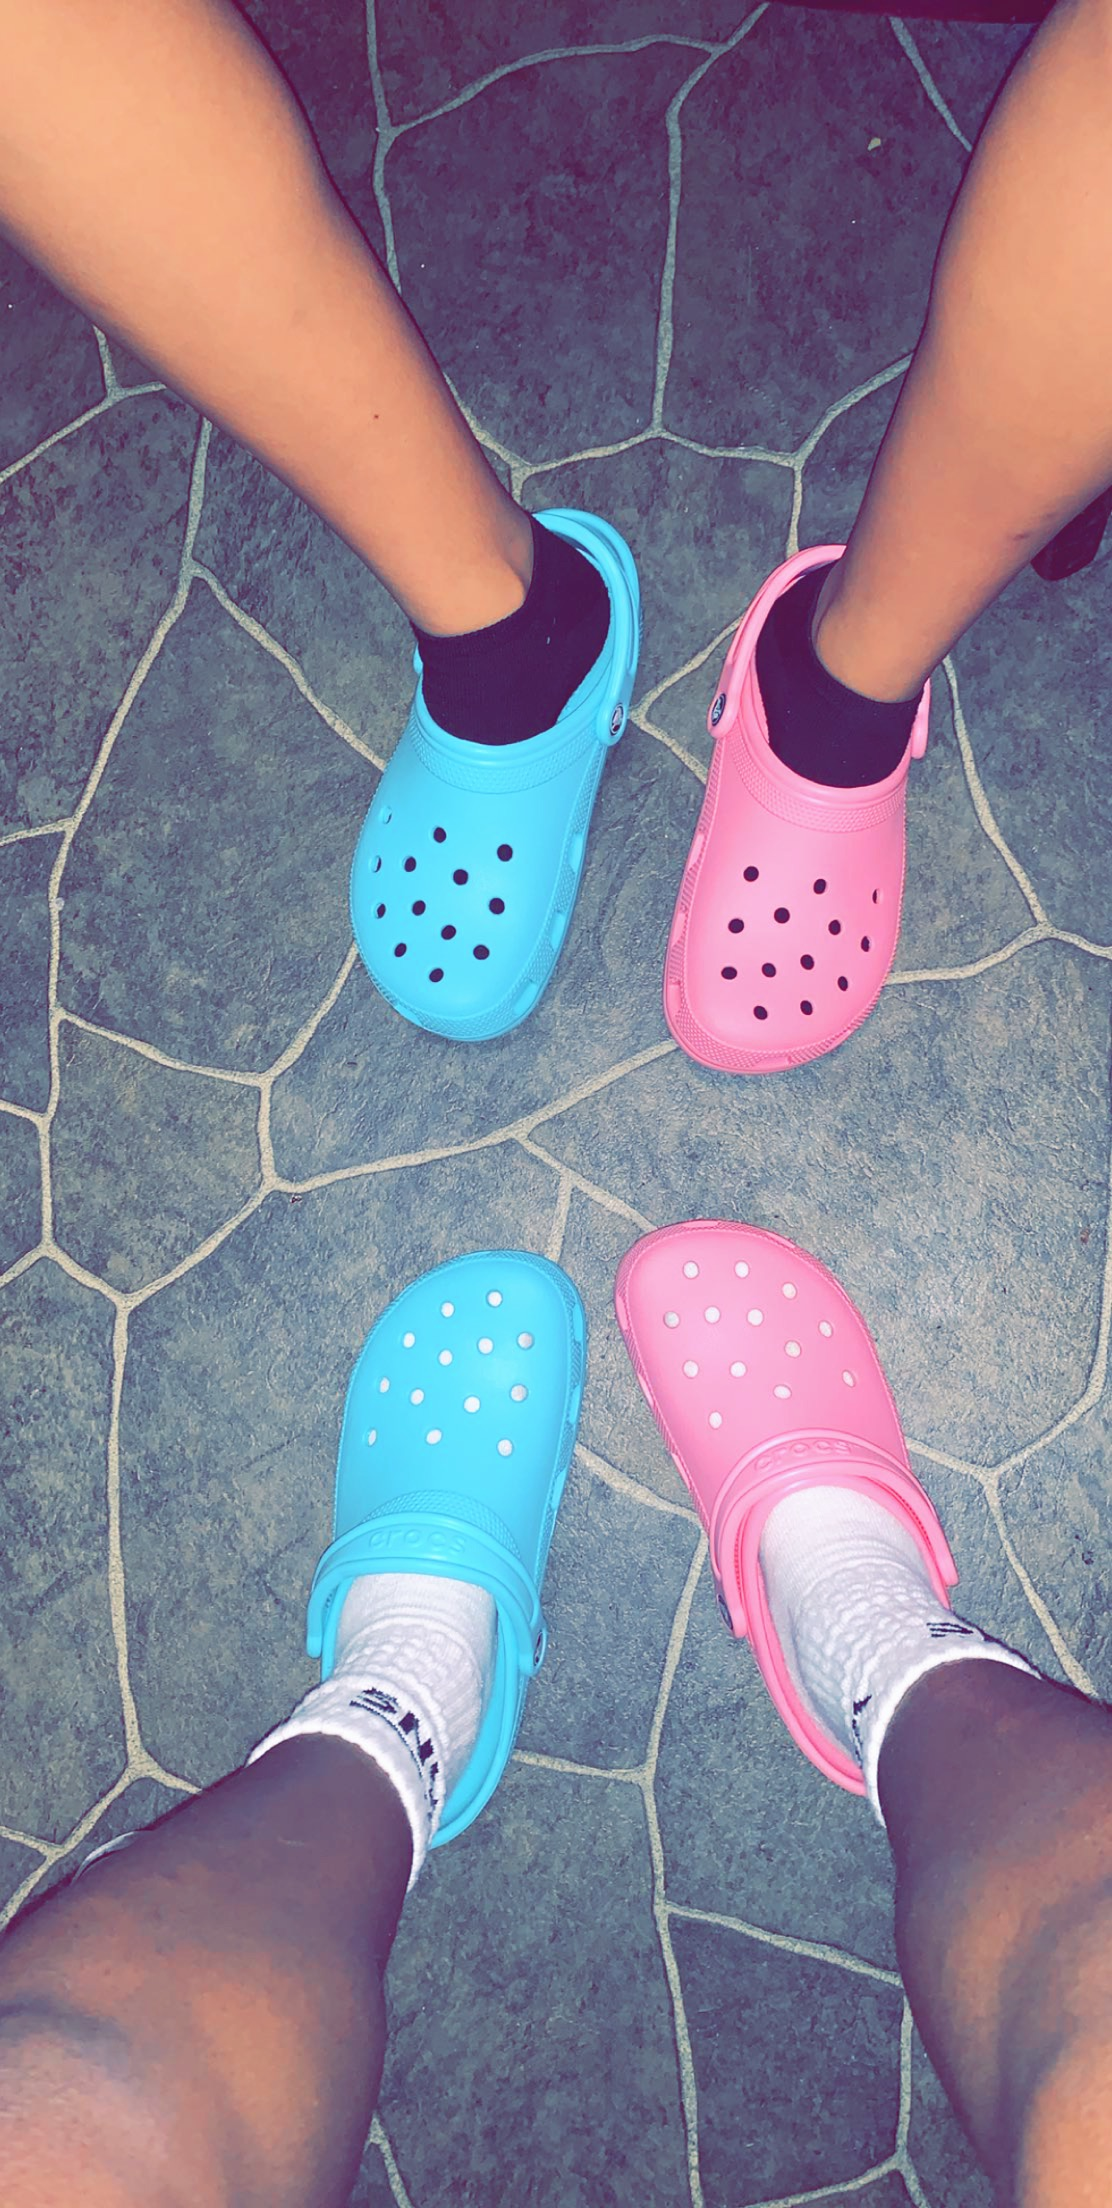 @adore.milah's snapchat picture for crocs